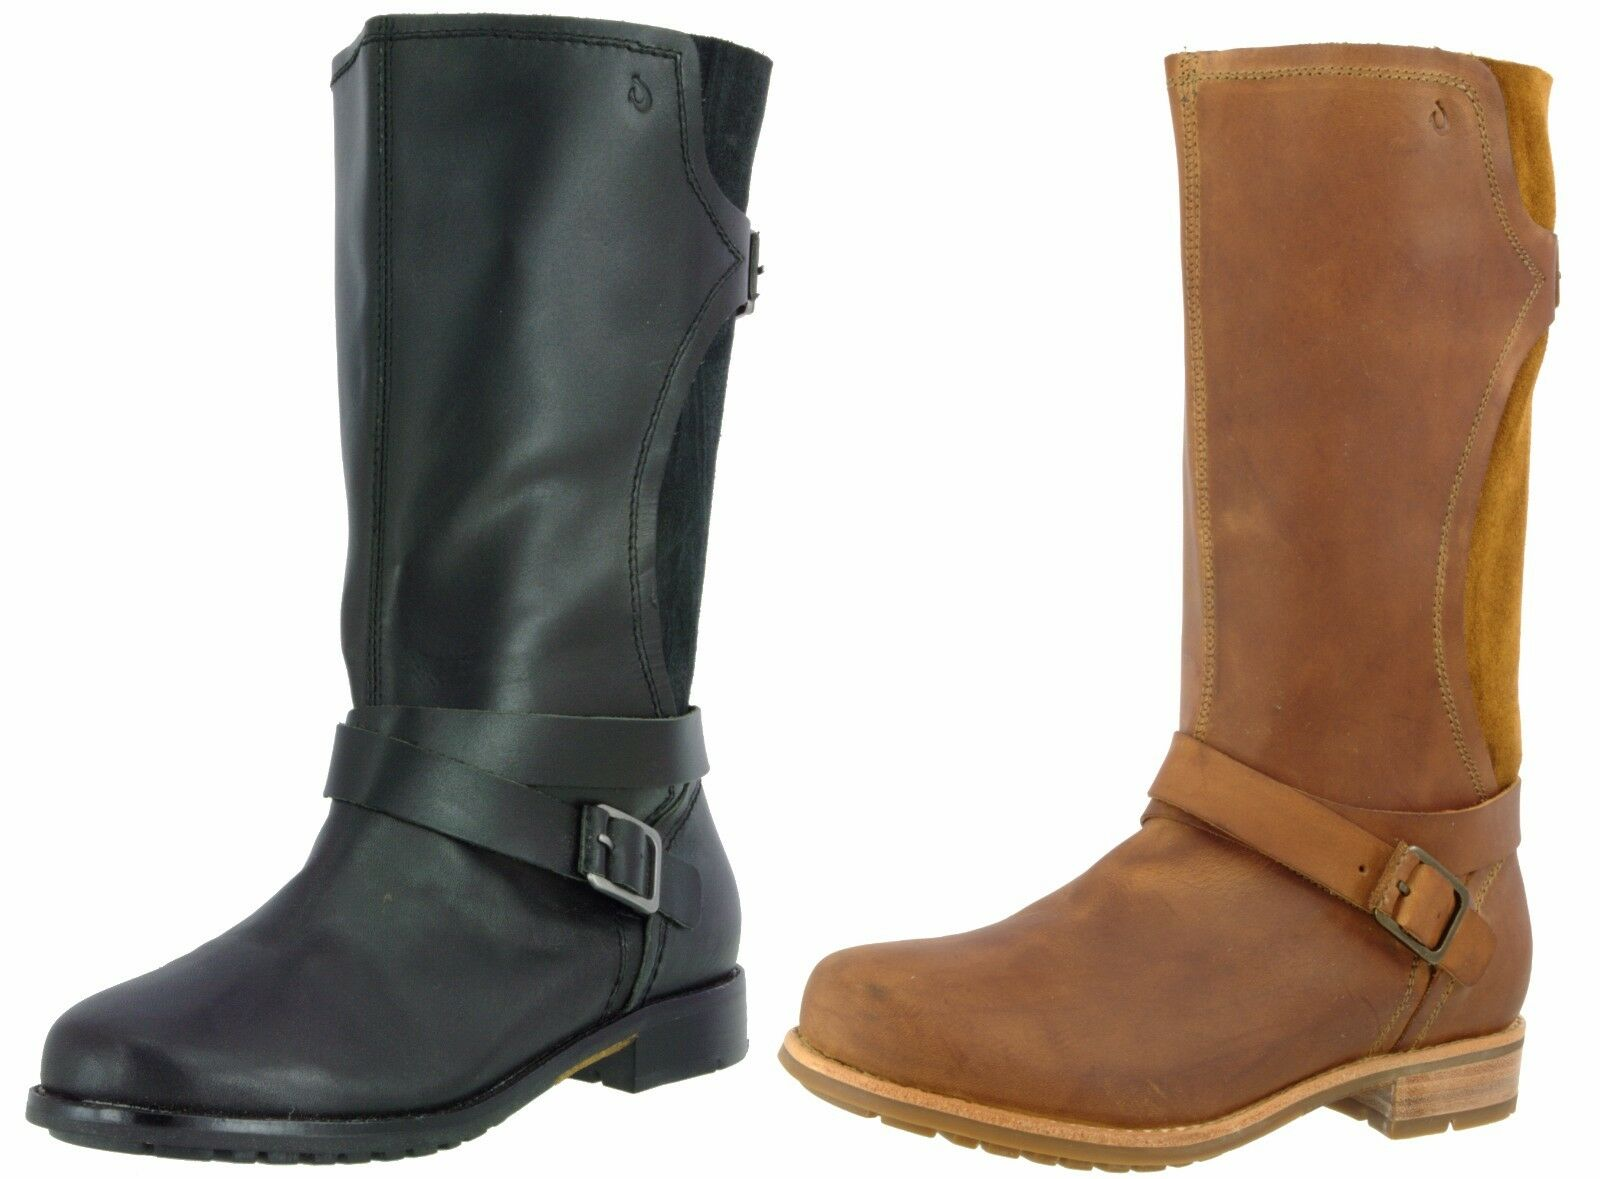 OLUKAI SAMPLE 20202 WOMEN'S PA'IA SUEDE LEATHER PULL ON  BOOTS US 7